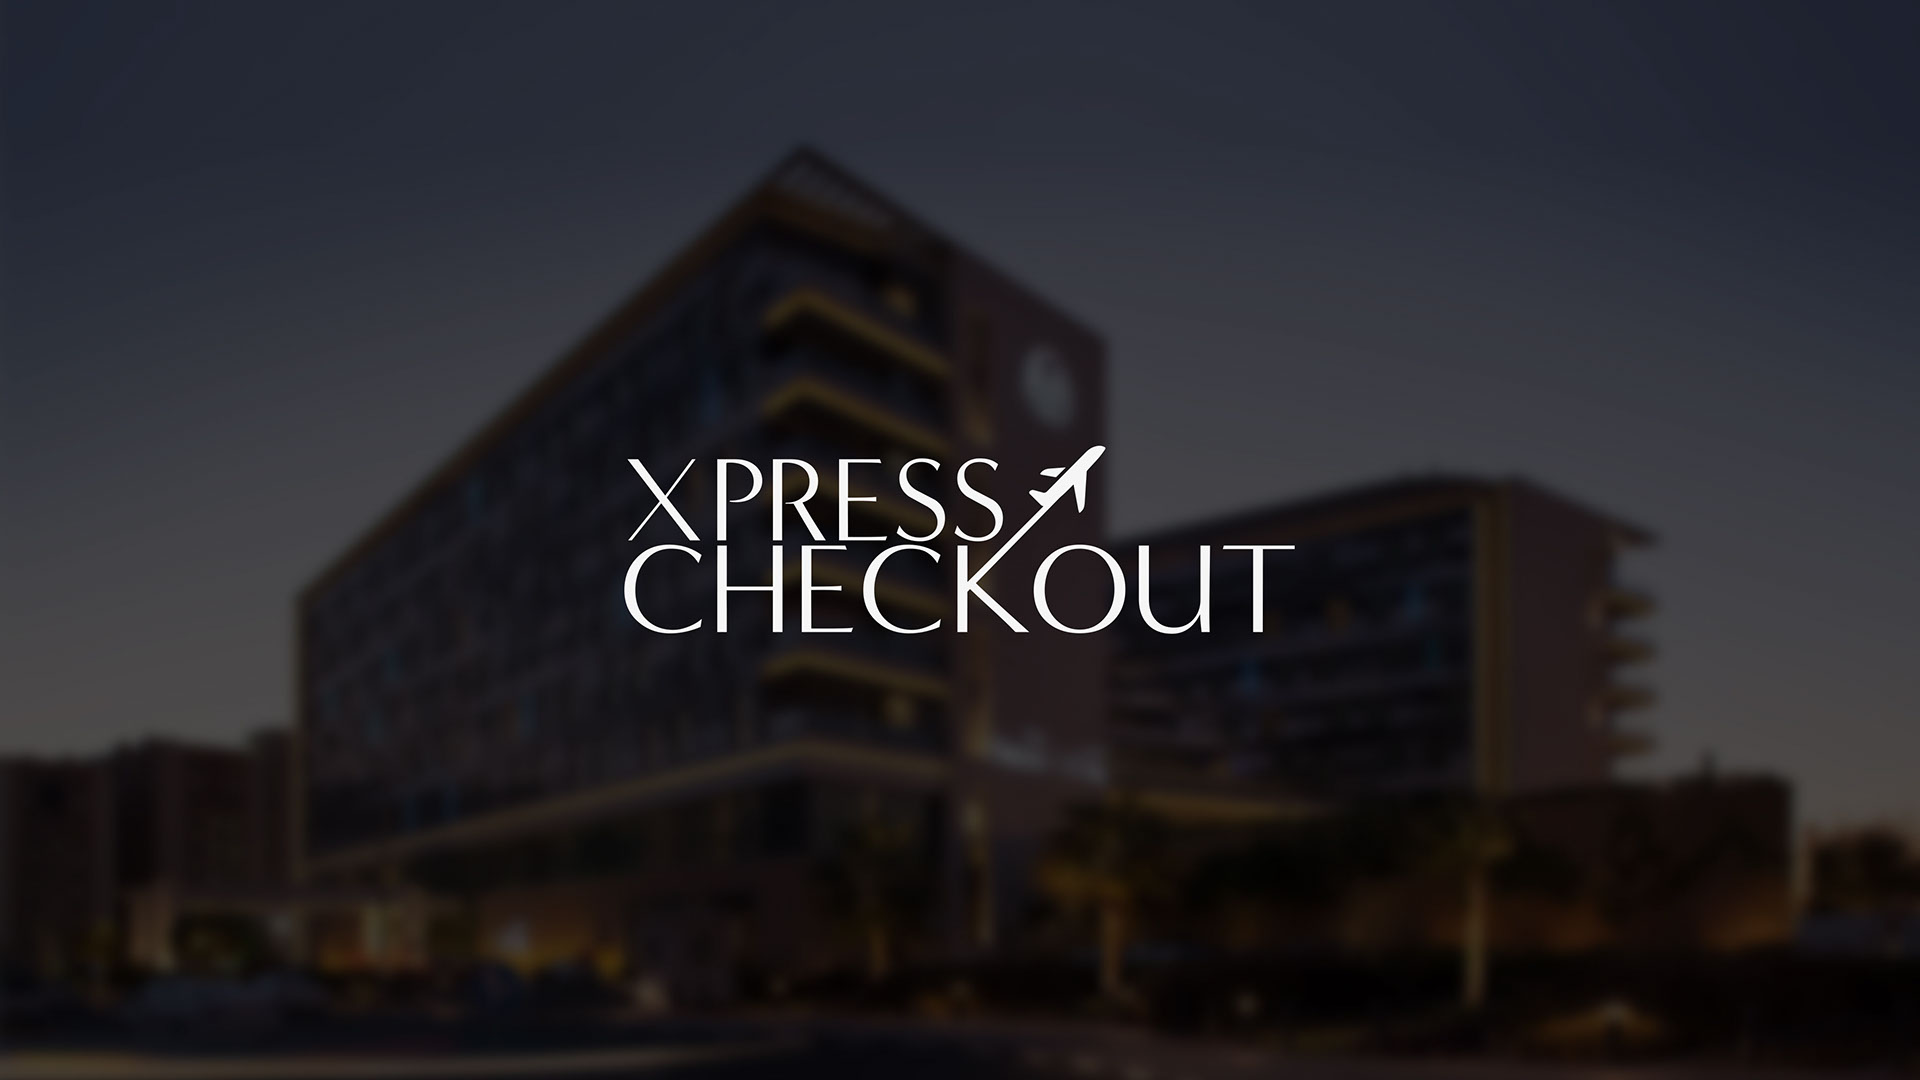 oryx rotana xpress checkout charith design graphic designer in qatar